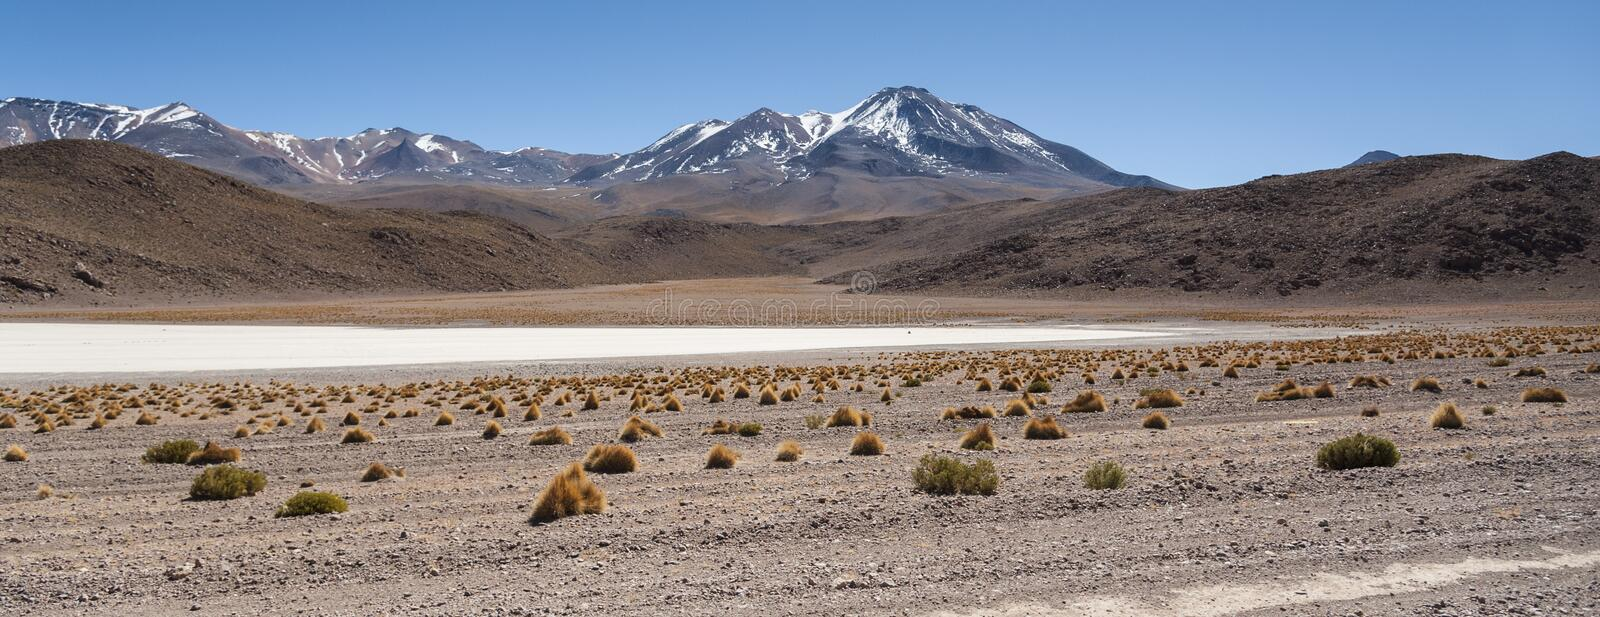 Scenic landscape of Canapa Lagoon Laguna Canapa in the Andes mountain range near the Uyuni salt flat, Bolivia, stock photography